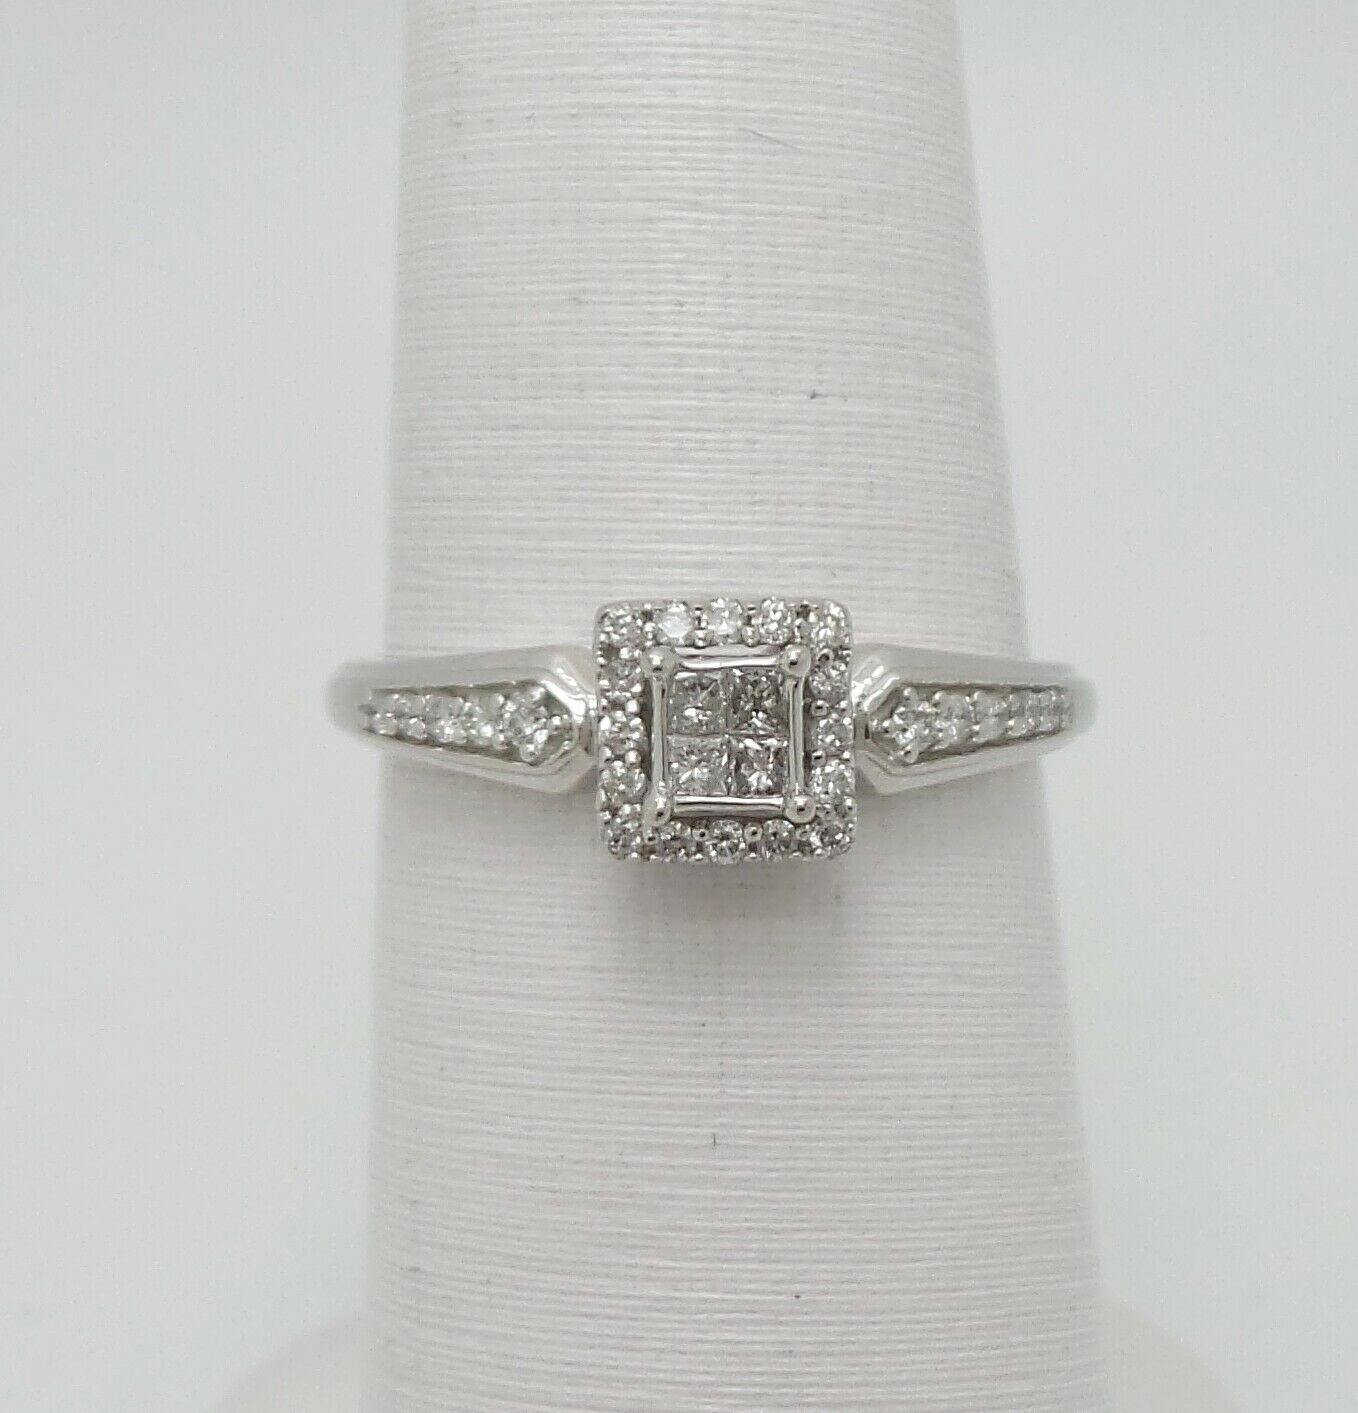 Zale 1 5CT Diamond Halo Solitaire Engagement Wedding Ring Bridal 10K White gold